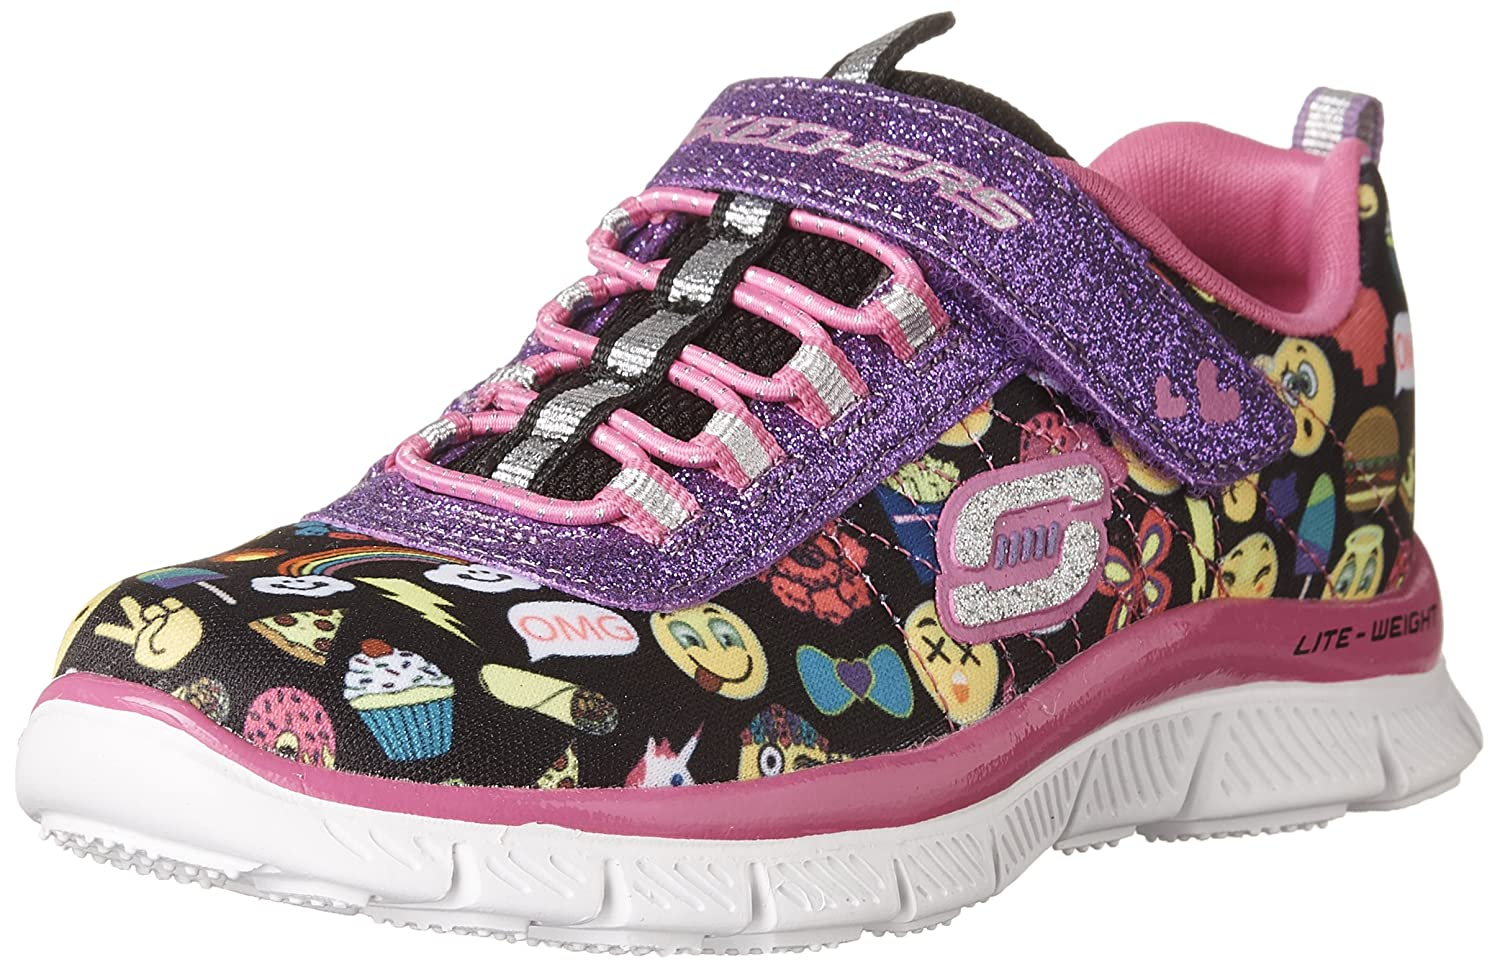 Skechers Girl's Skech Appeal - Pixel Princess Sneakers 81841L